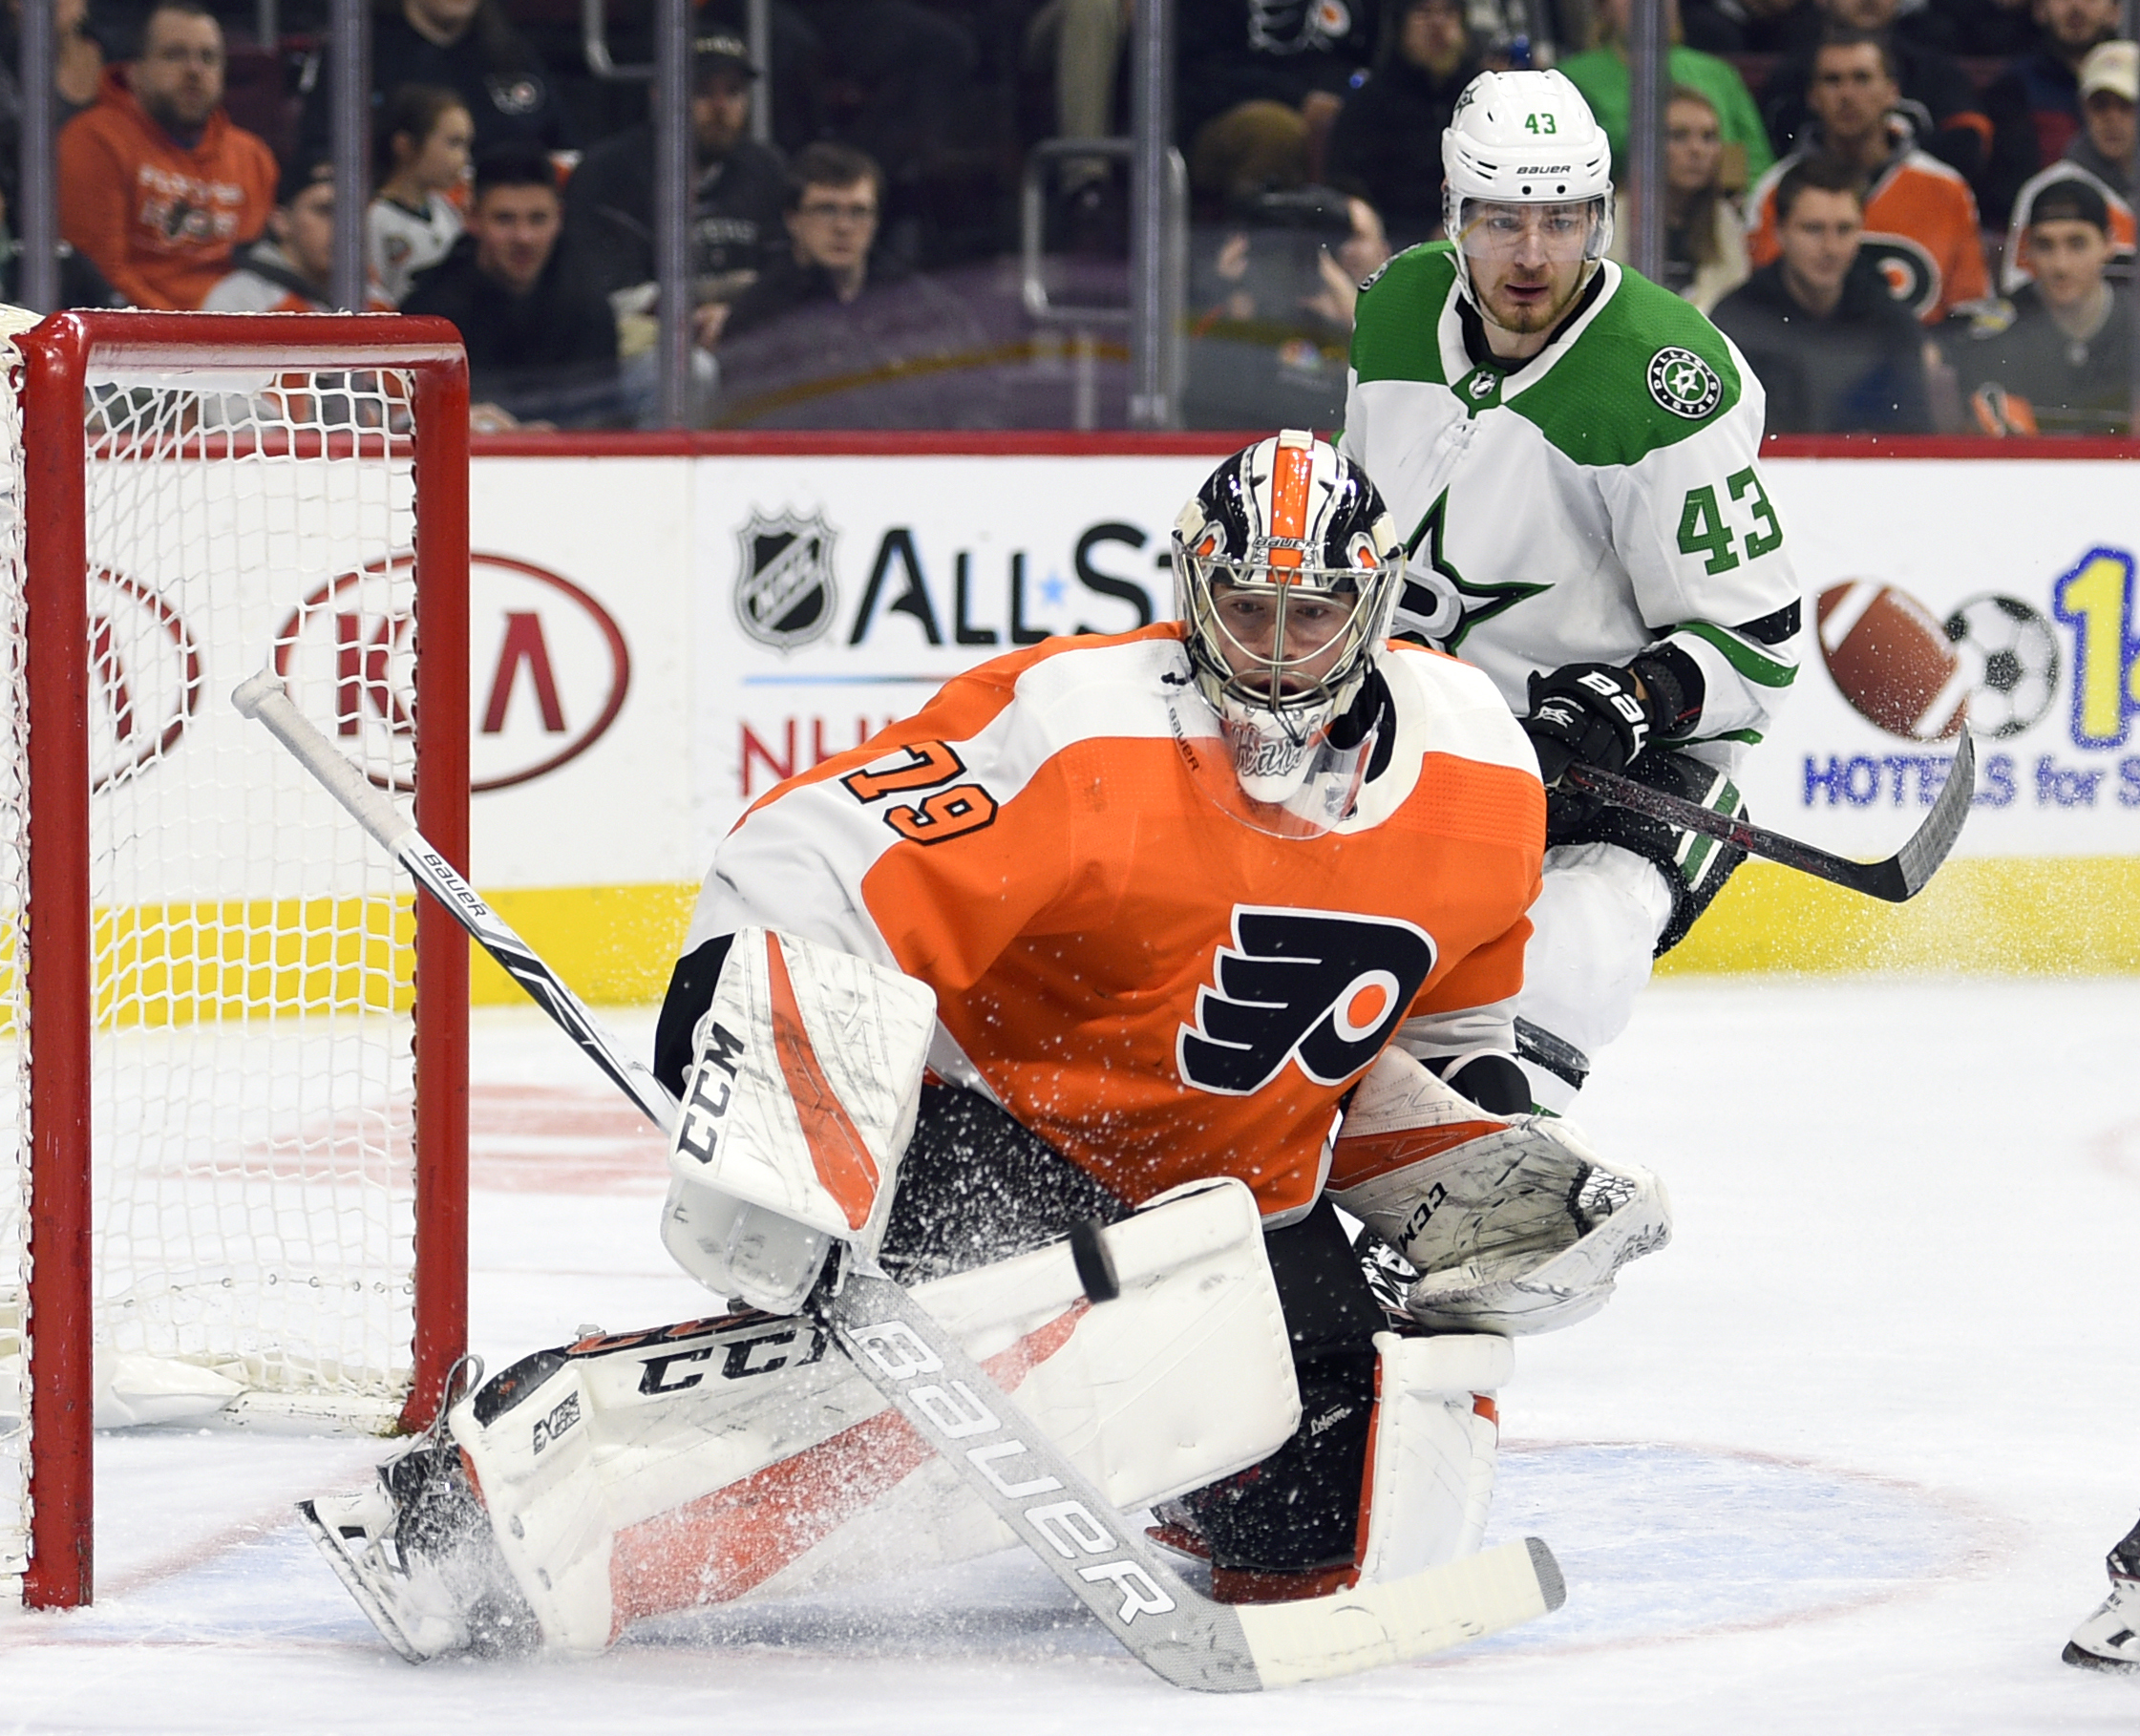 Hart helps Flyers beat Stars 2-1 to end eight-game skid